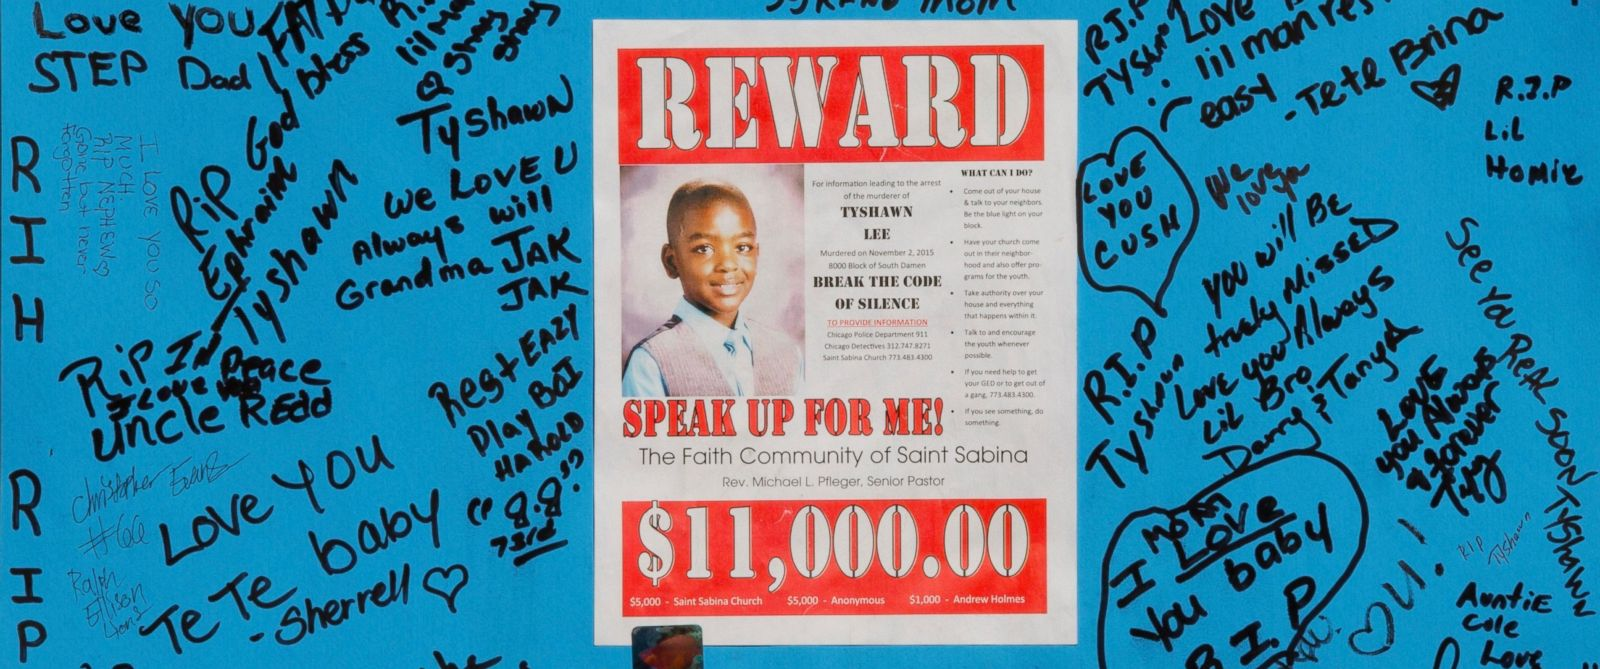 A reward sign and messages hang near the site where 9-year-old Tyshawn Lee was fatally shot Nov. 2, 2015, in Chicago. On March 7, 2016, Dwight Boone-Doty, 22, was charged with first-degree murder in Tyshawns death.